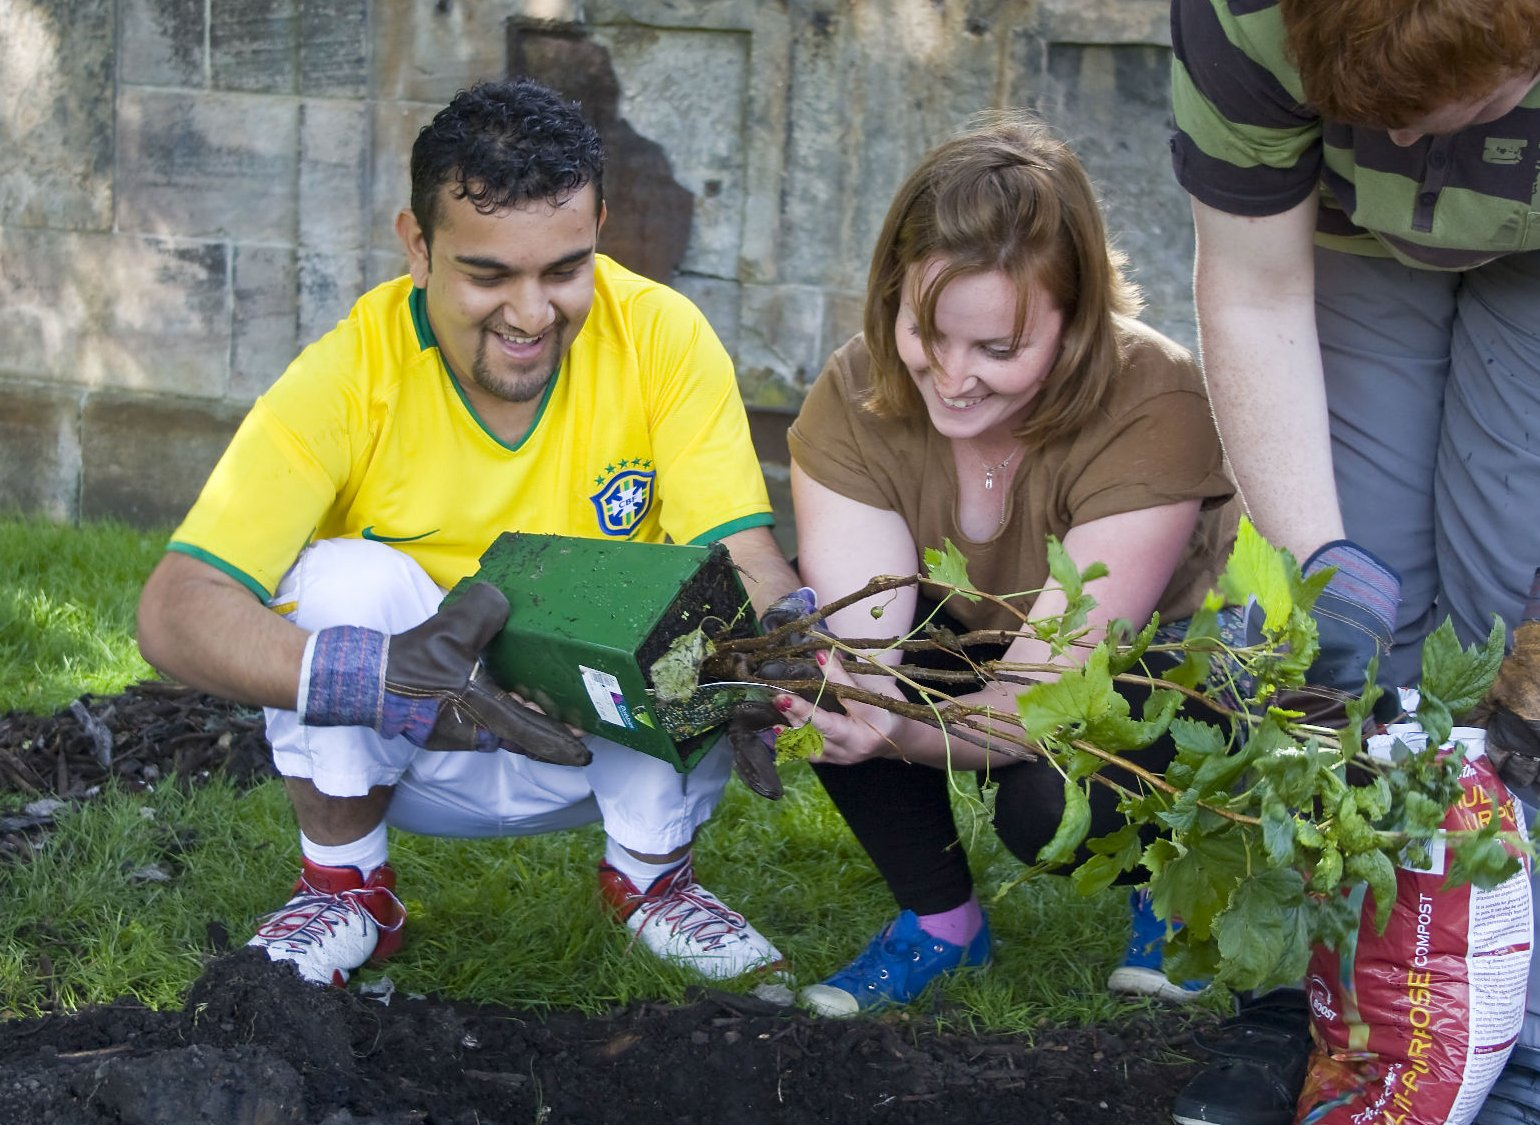 A man who has a learning disability being supported to do gardening